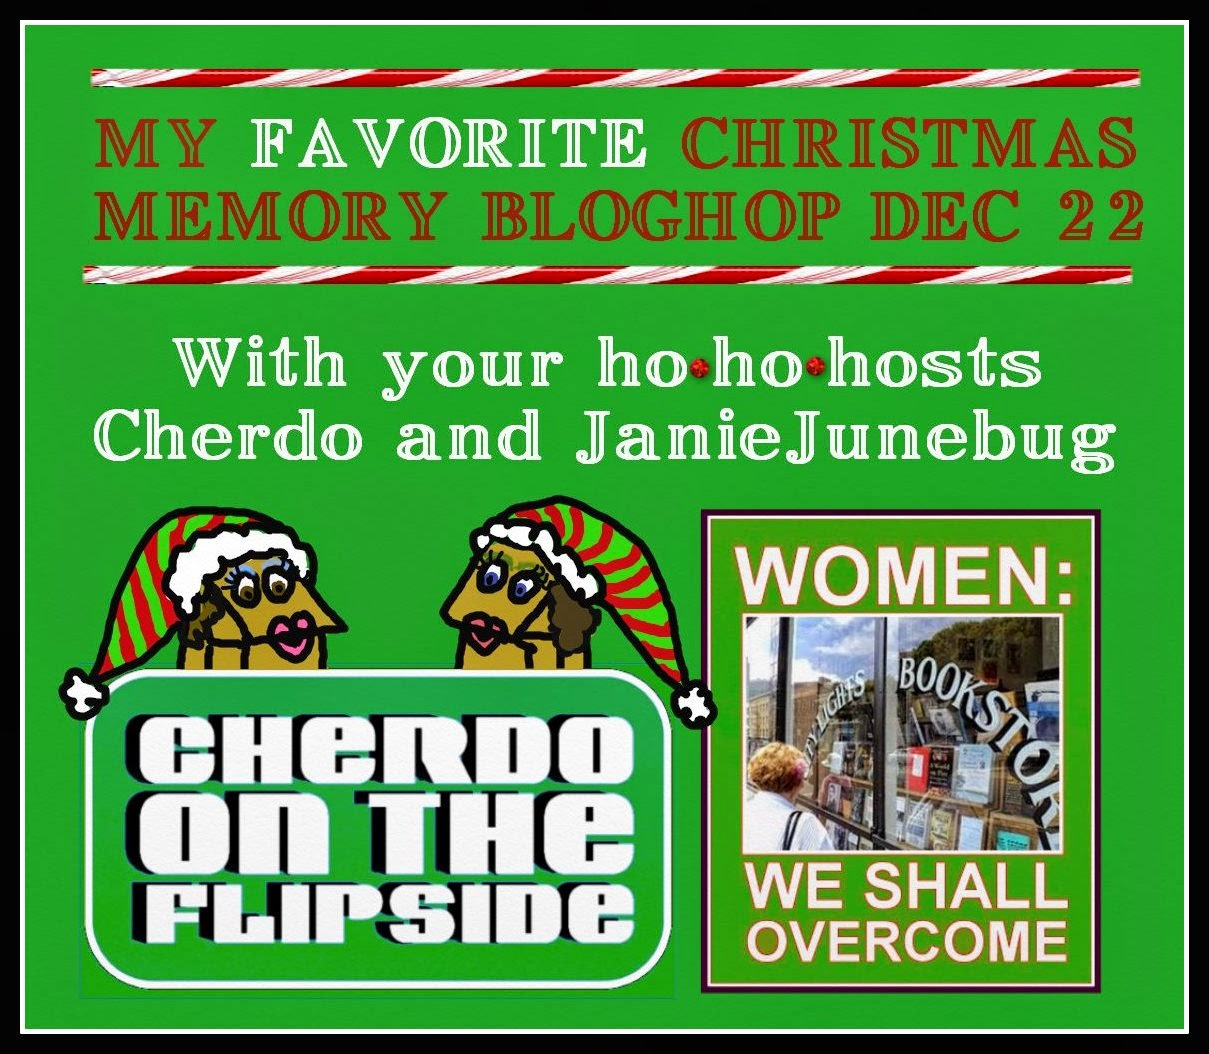 My Favorite Christmas Memory Bloghop Dec. 22